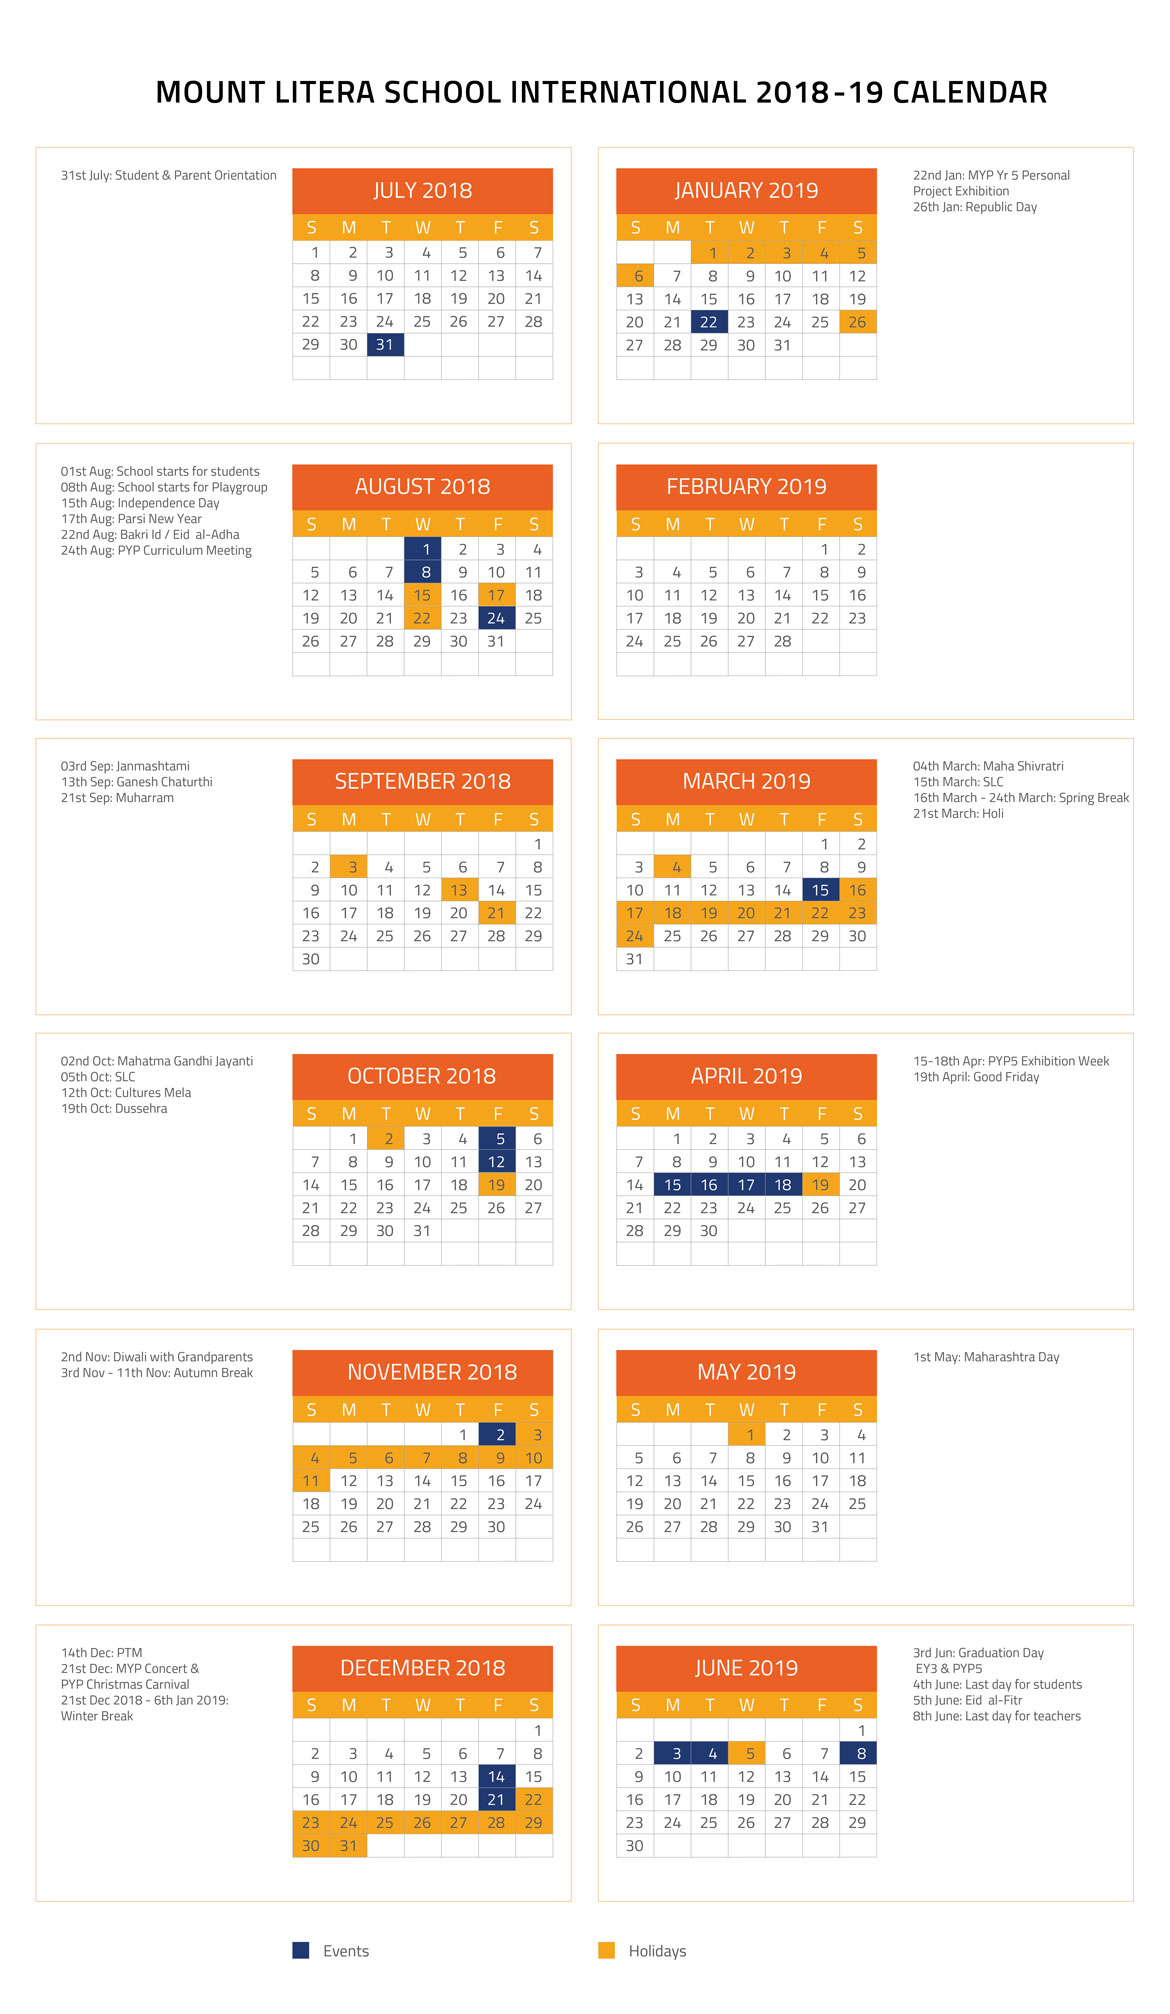 School Calendar Mount Litera School International